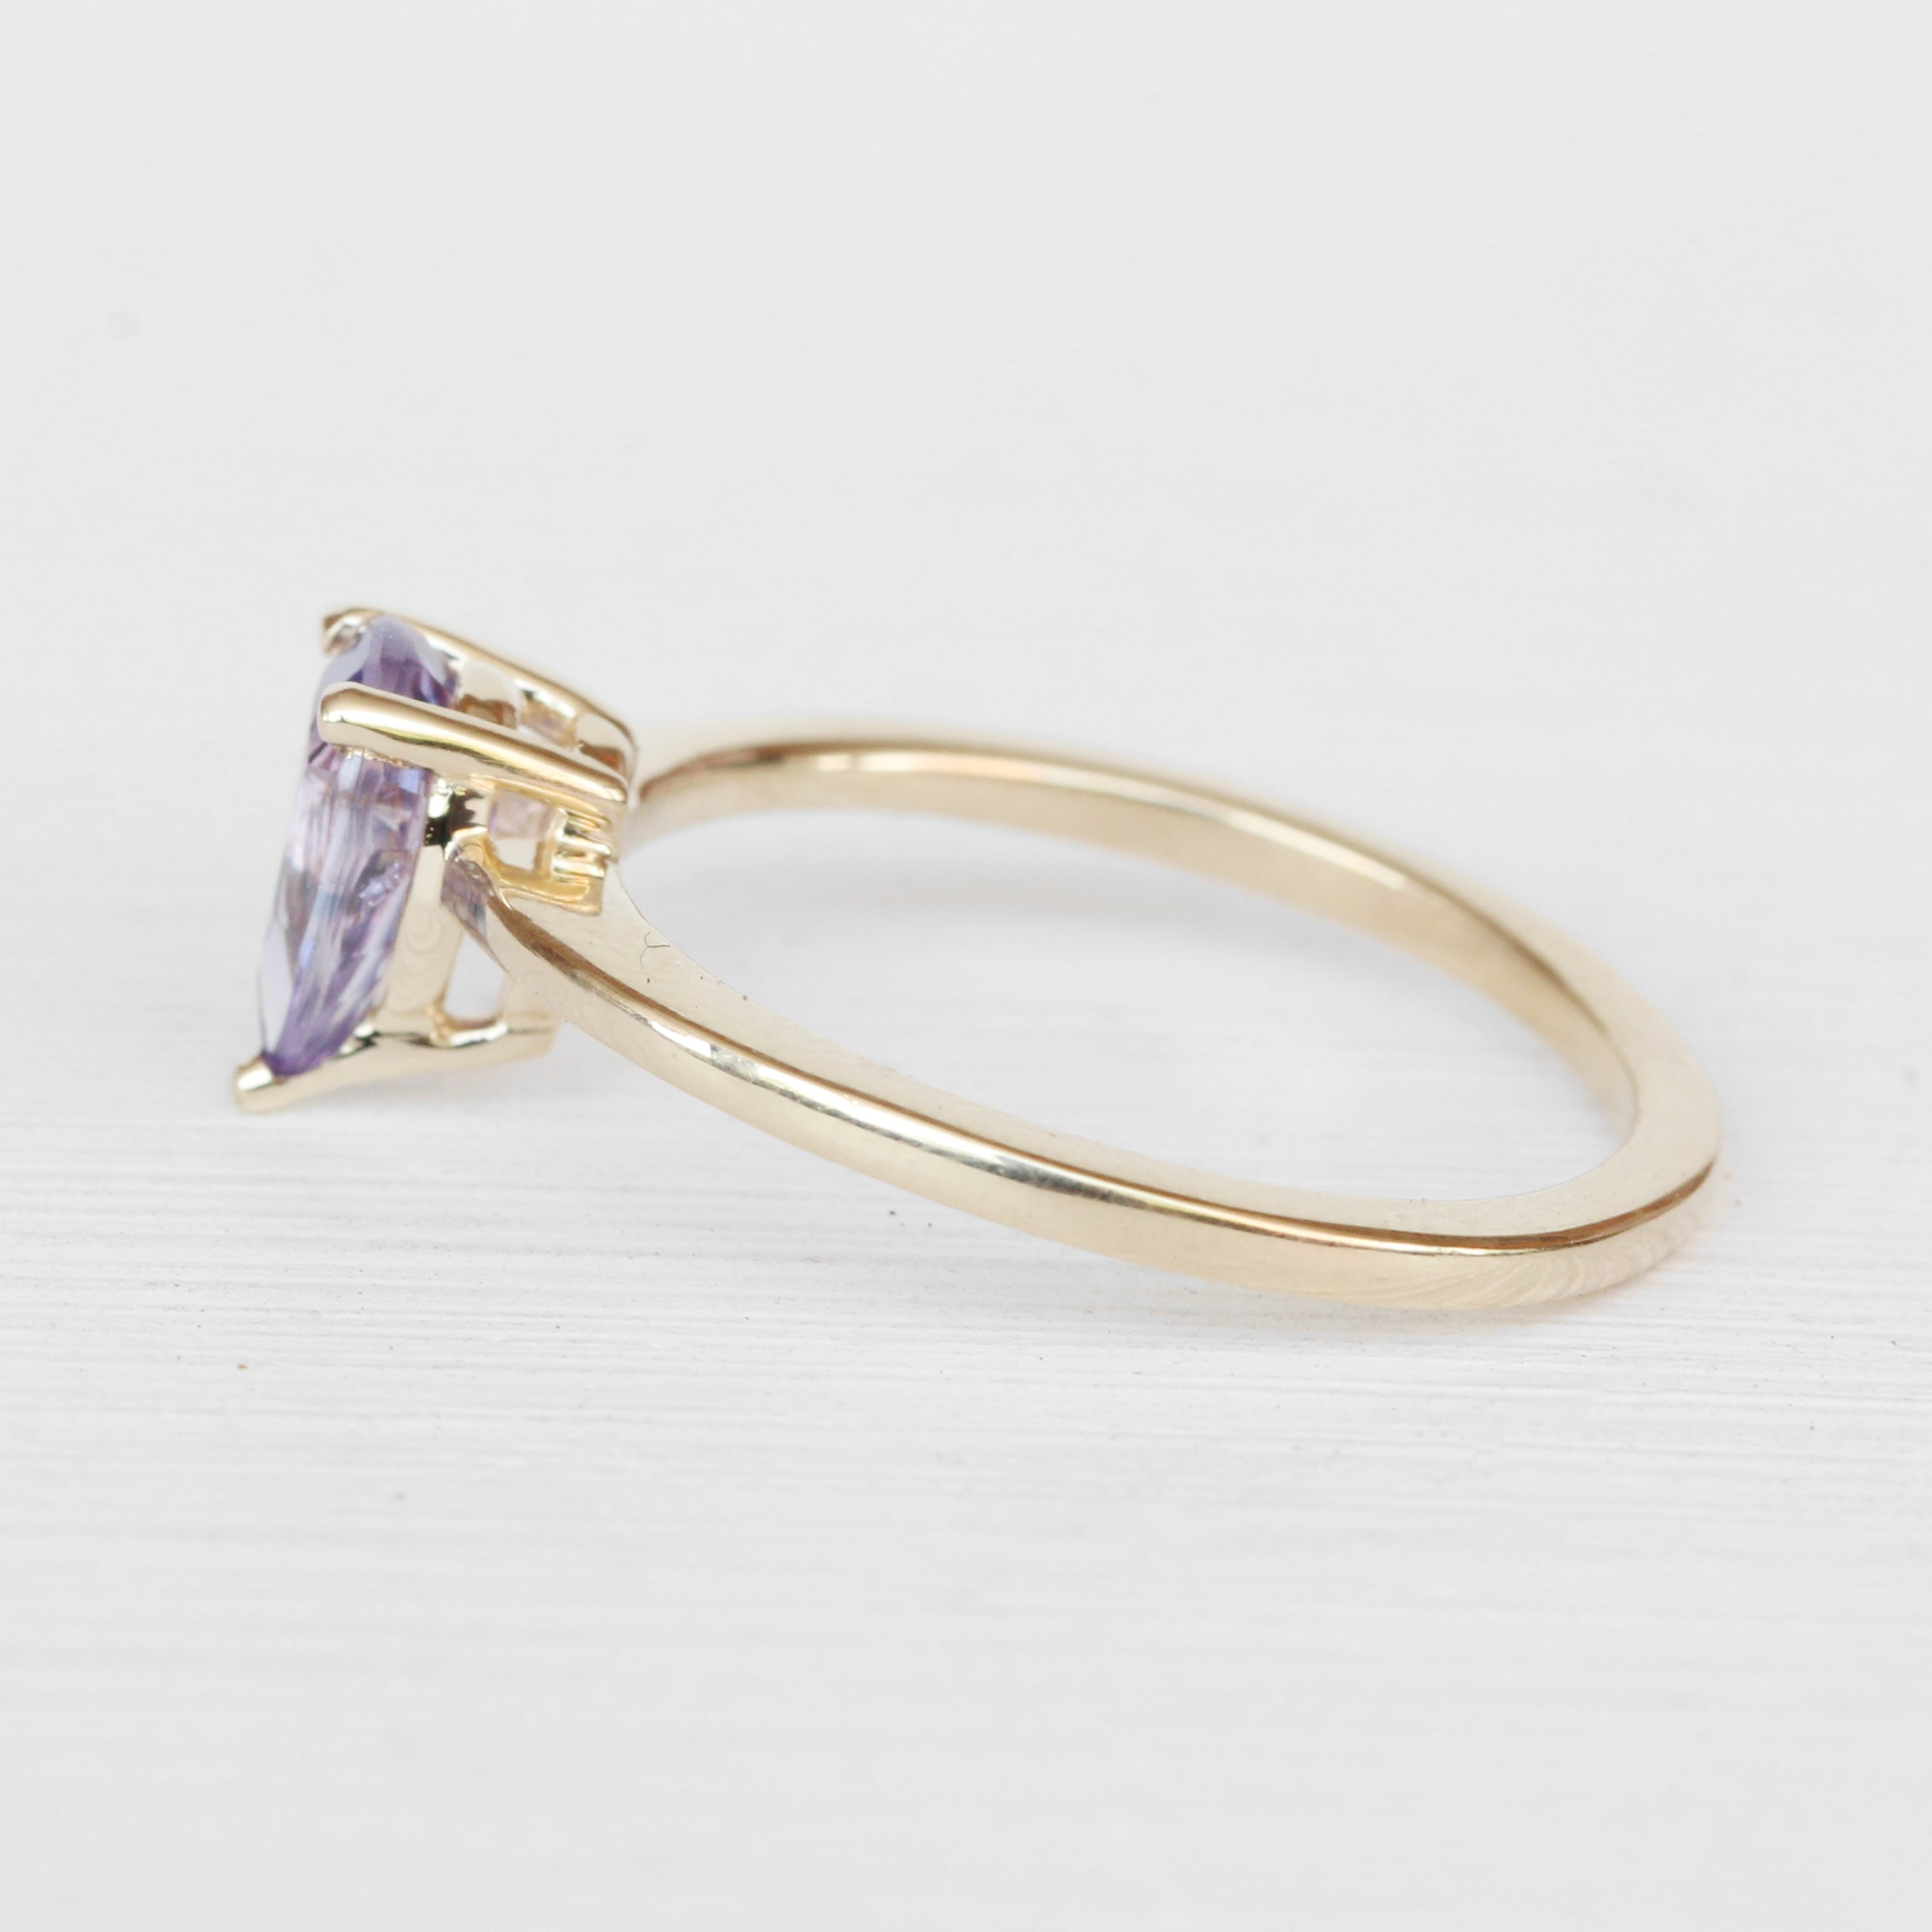 Ruthie Ring with a Pear Sapphire in 14k Yellow Gold - Ready to Size and Ship - Celestial Diamonds ® by Midwinter Co.